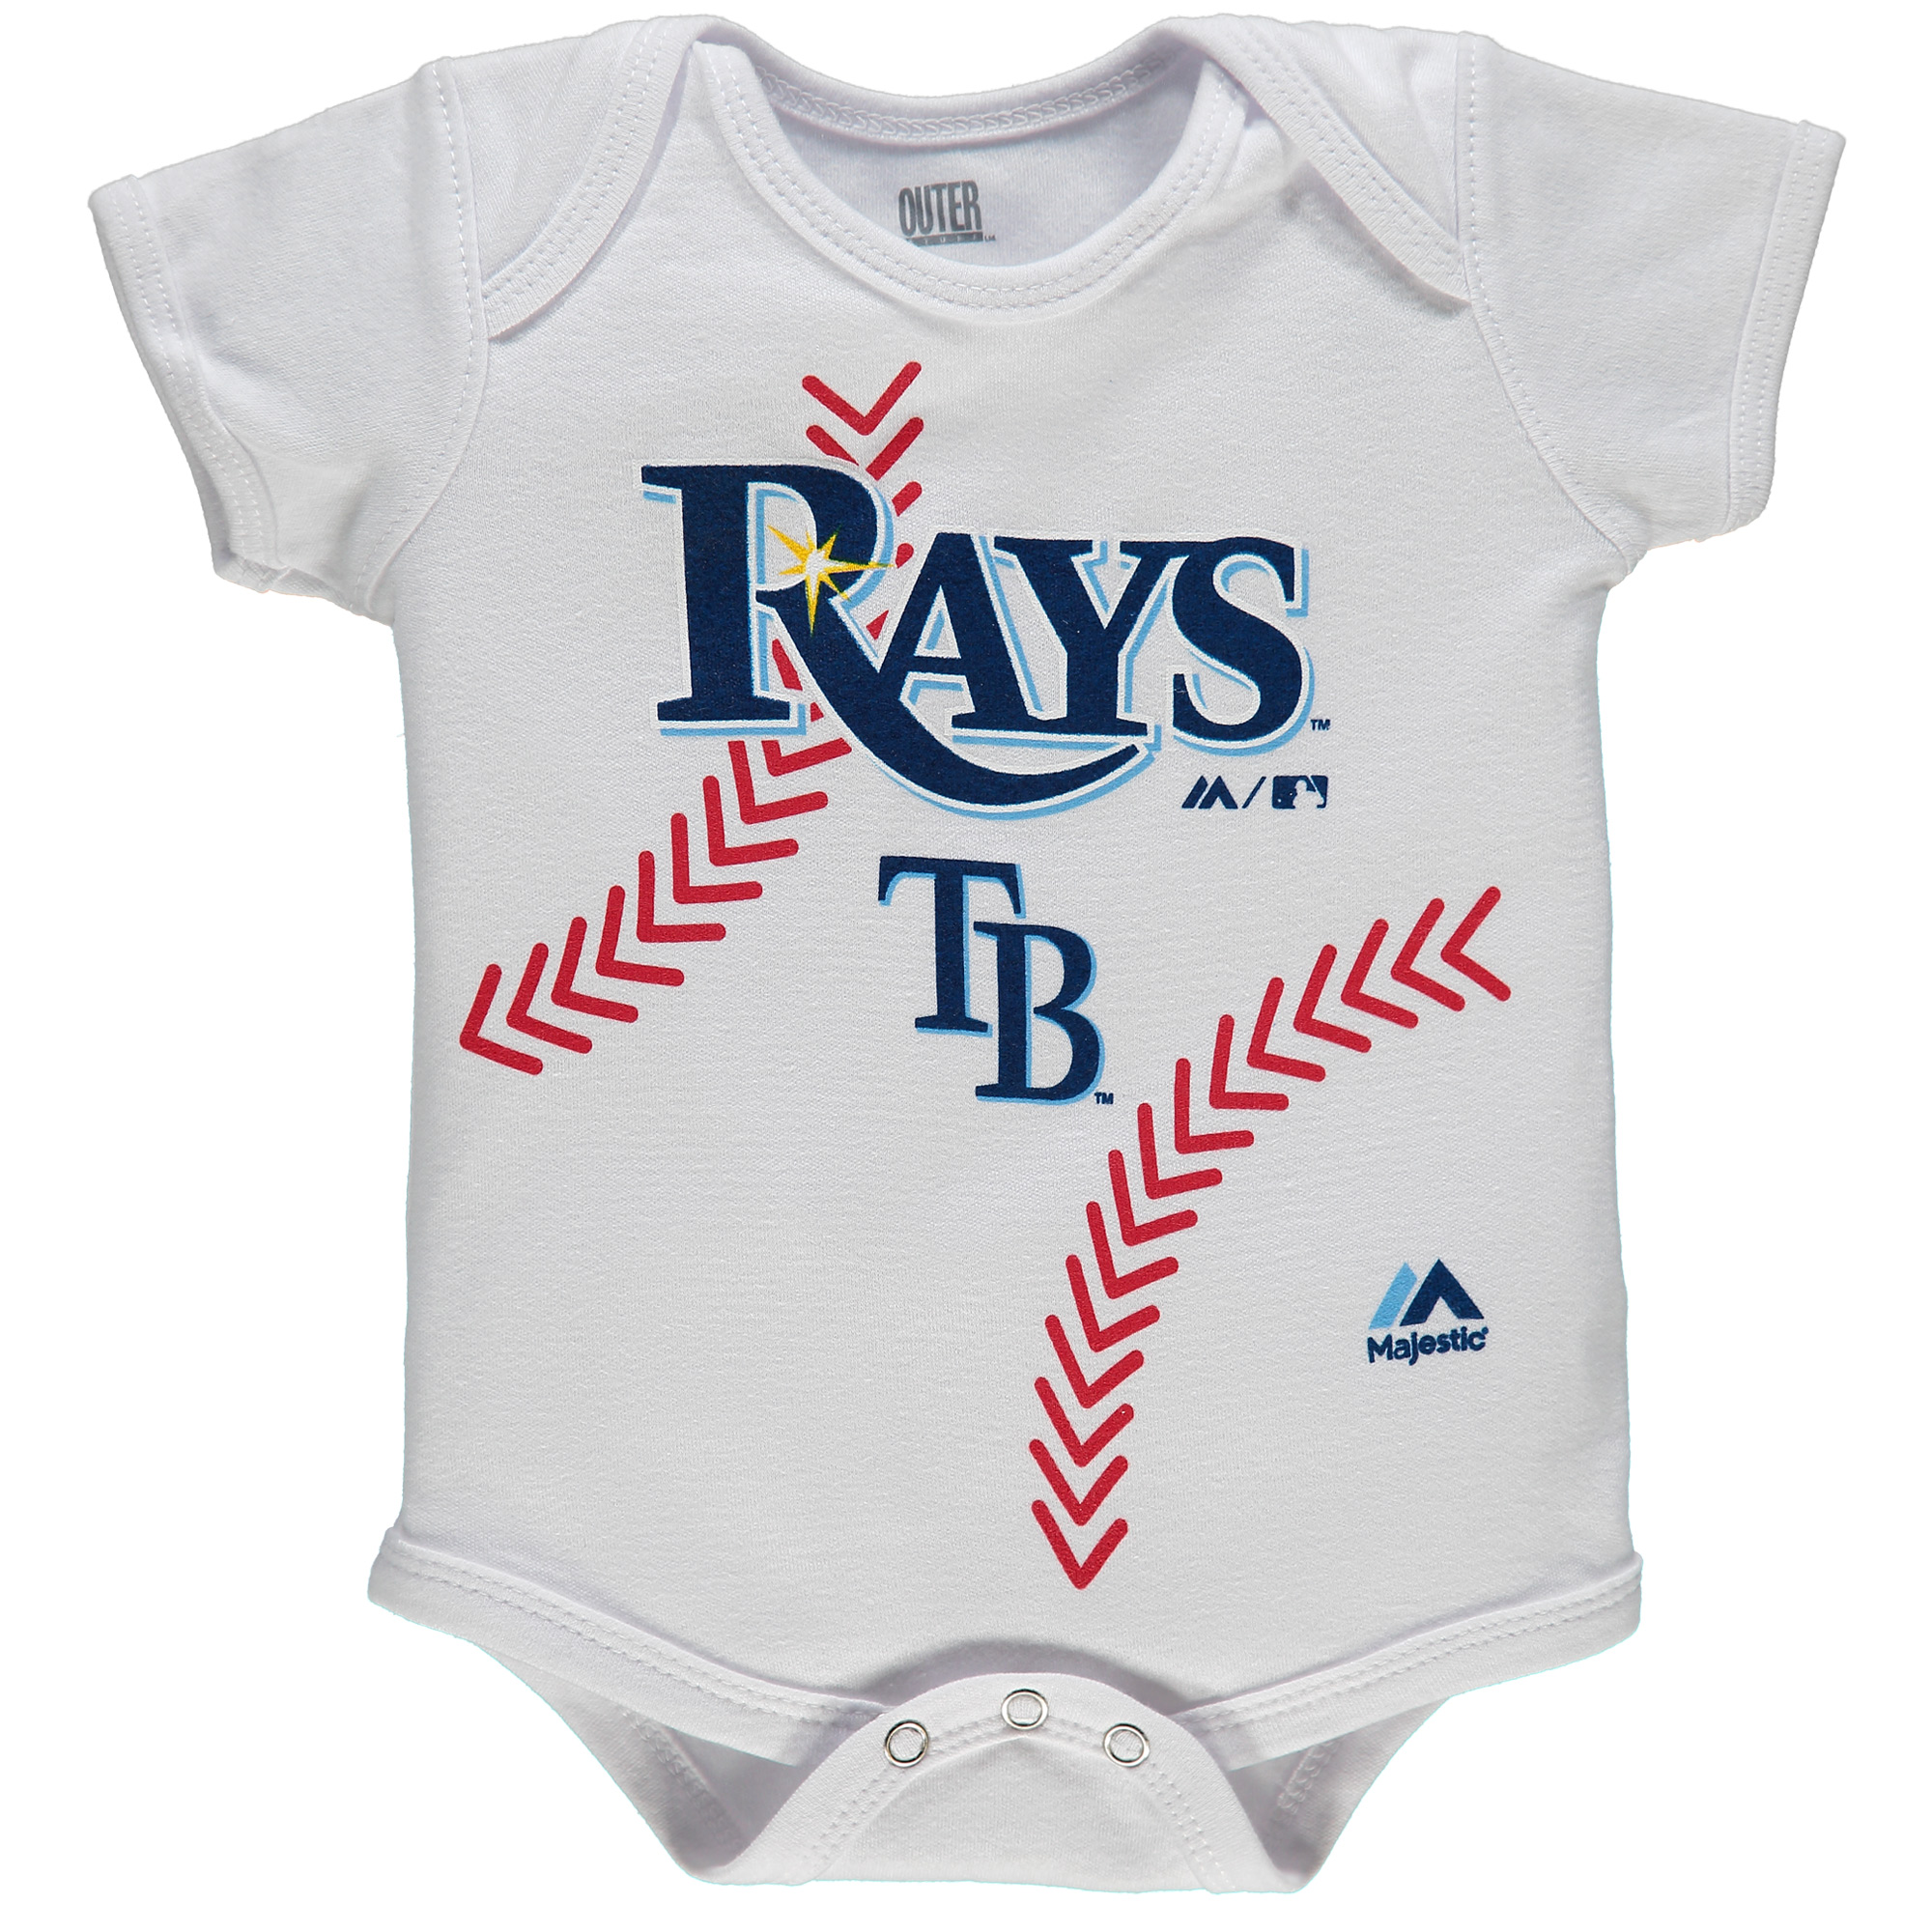 Tampa Bay Rays Majestic Newborn Stitches Baseball Bodysuit - White